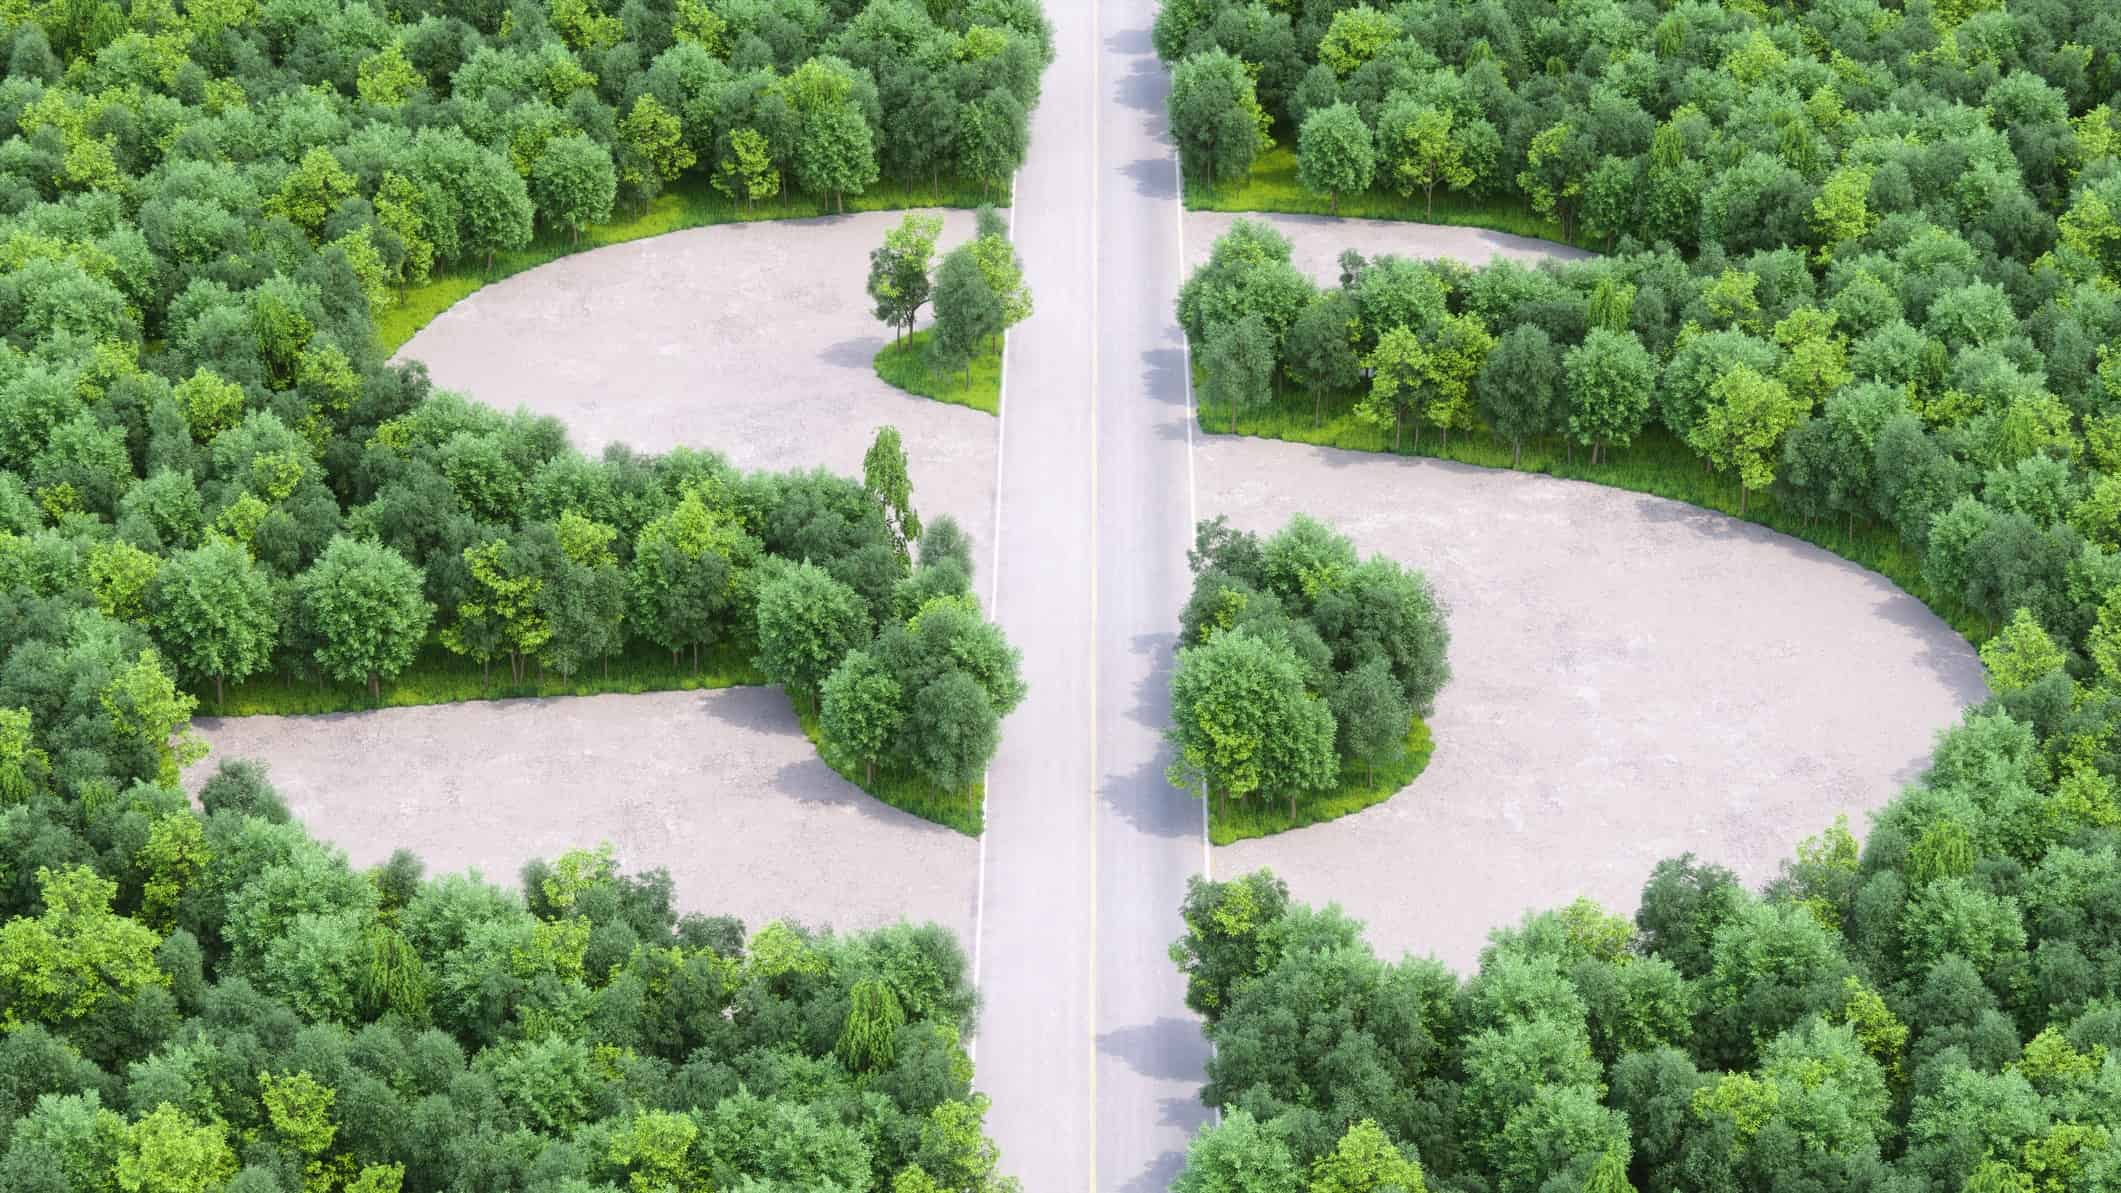 Trees and a road shapes a dollar sign of green, indicating the share price movement of ASX eco companies